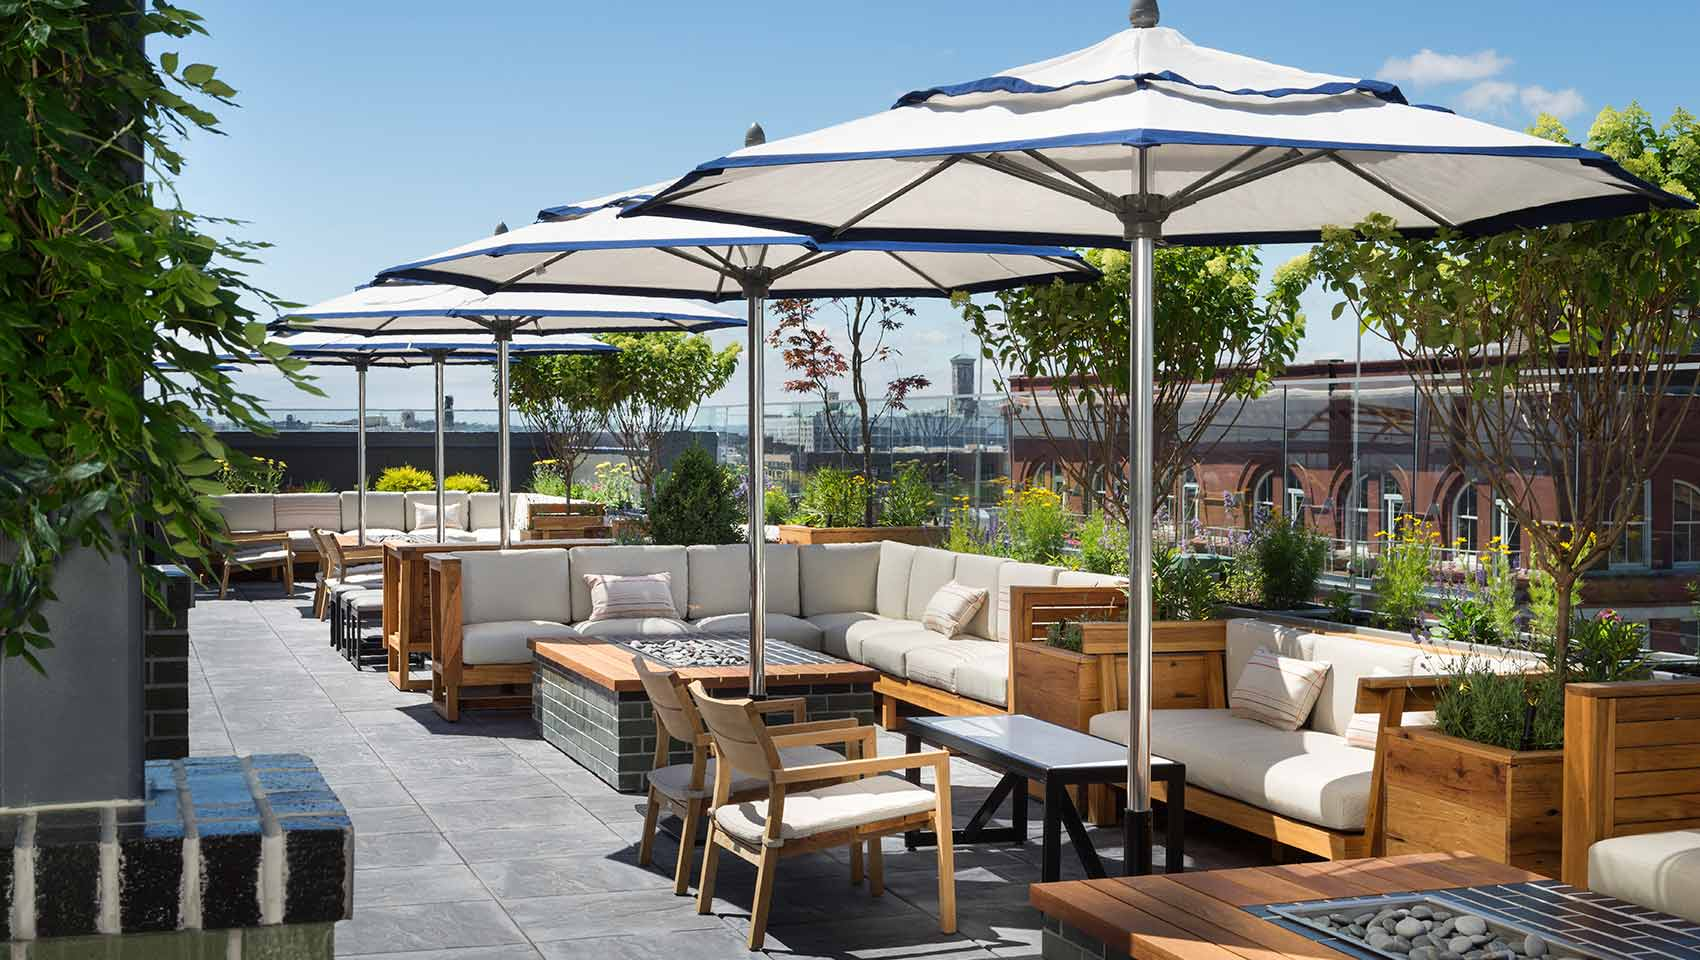 Kimpton The Journeyman outdoor seating